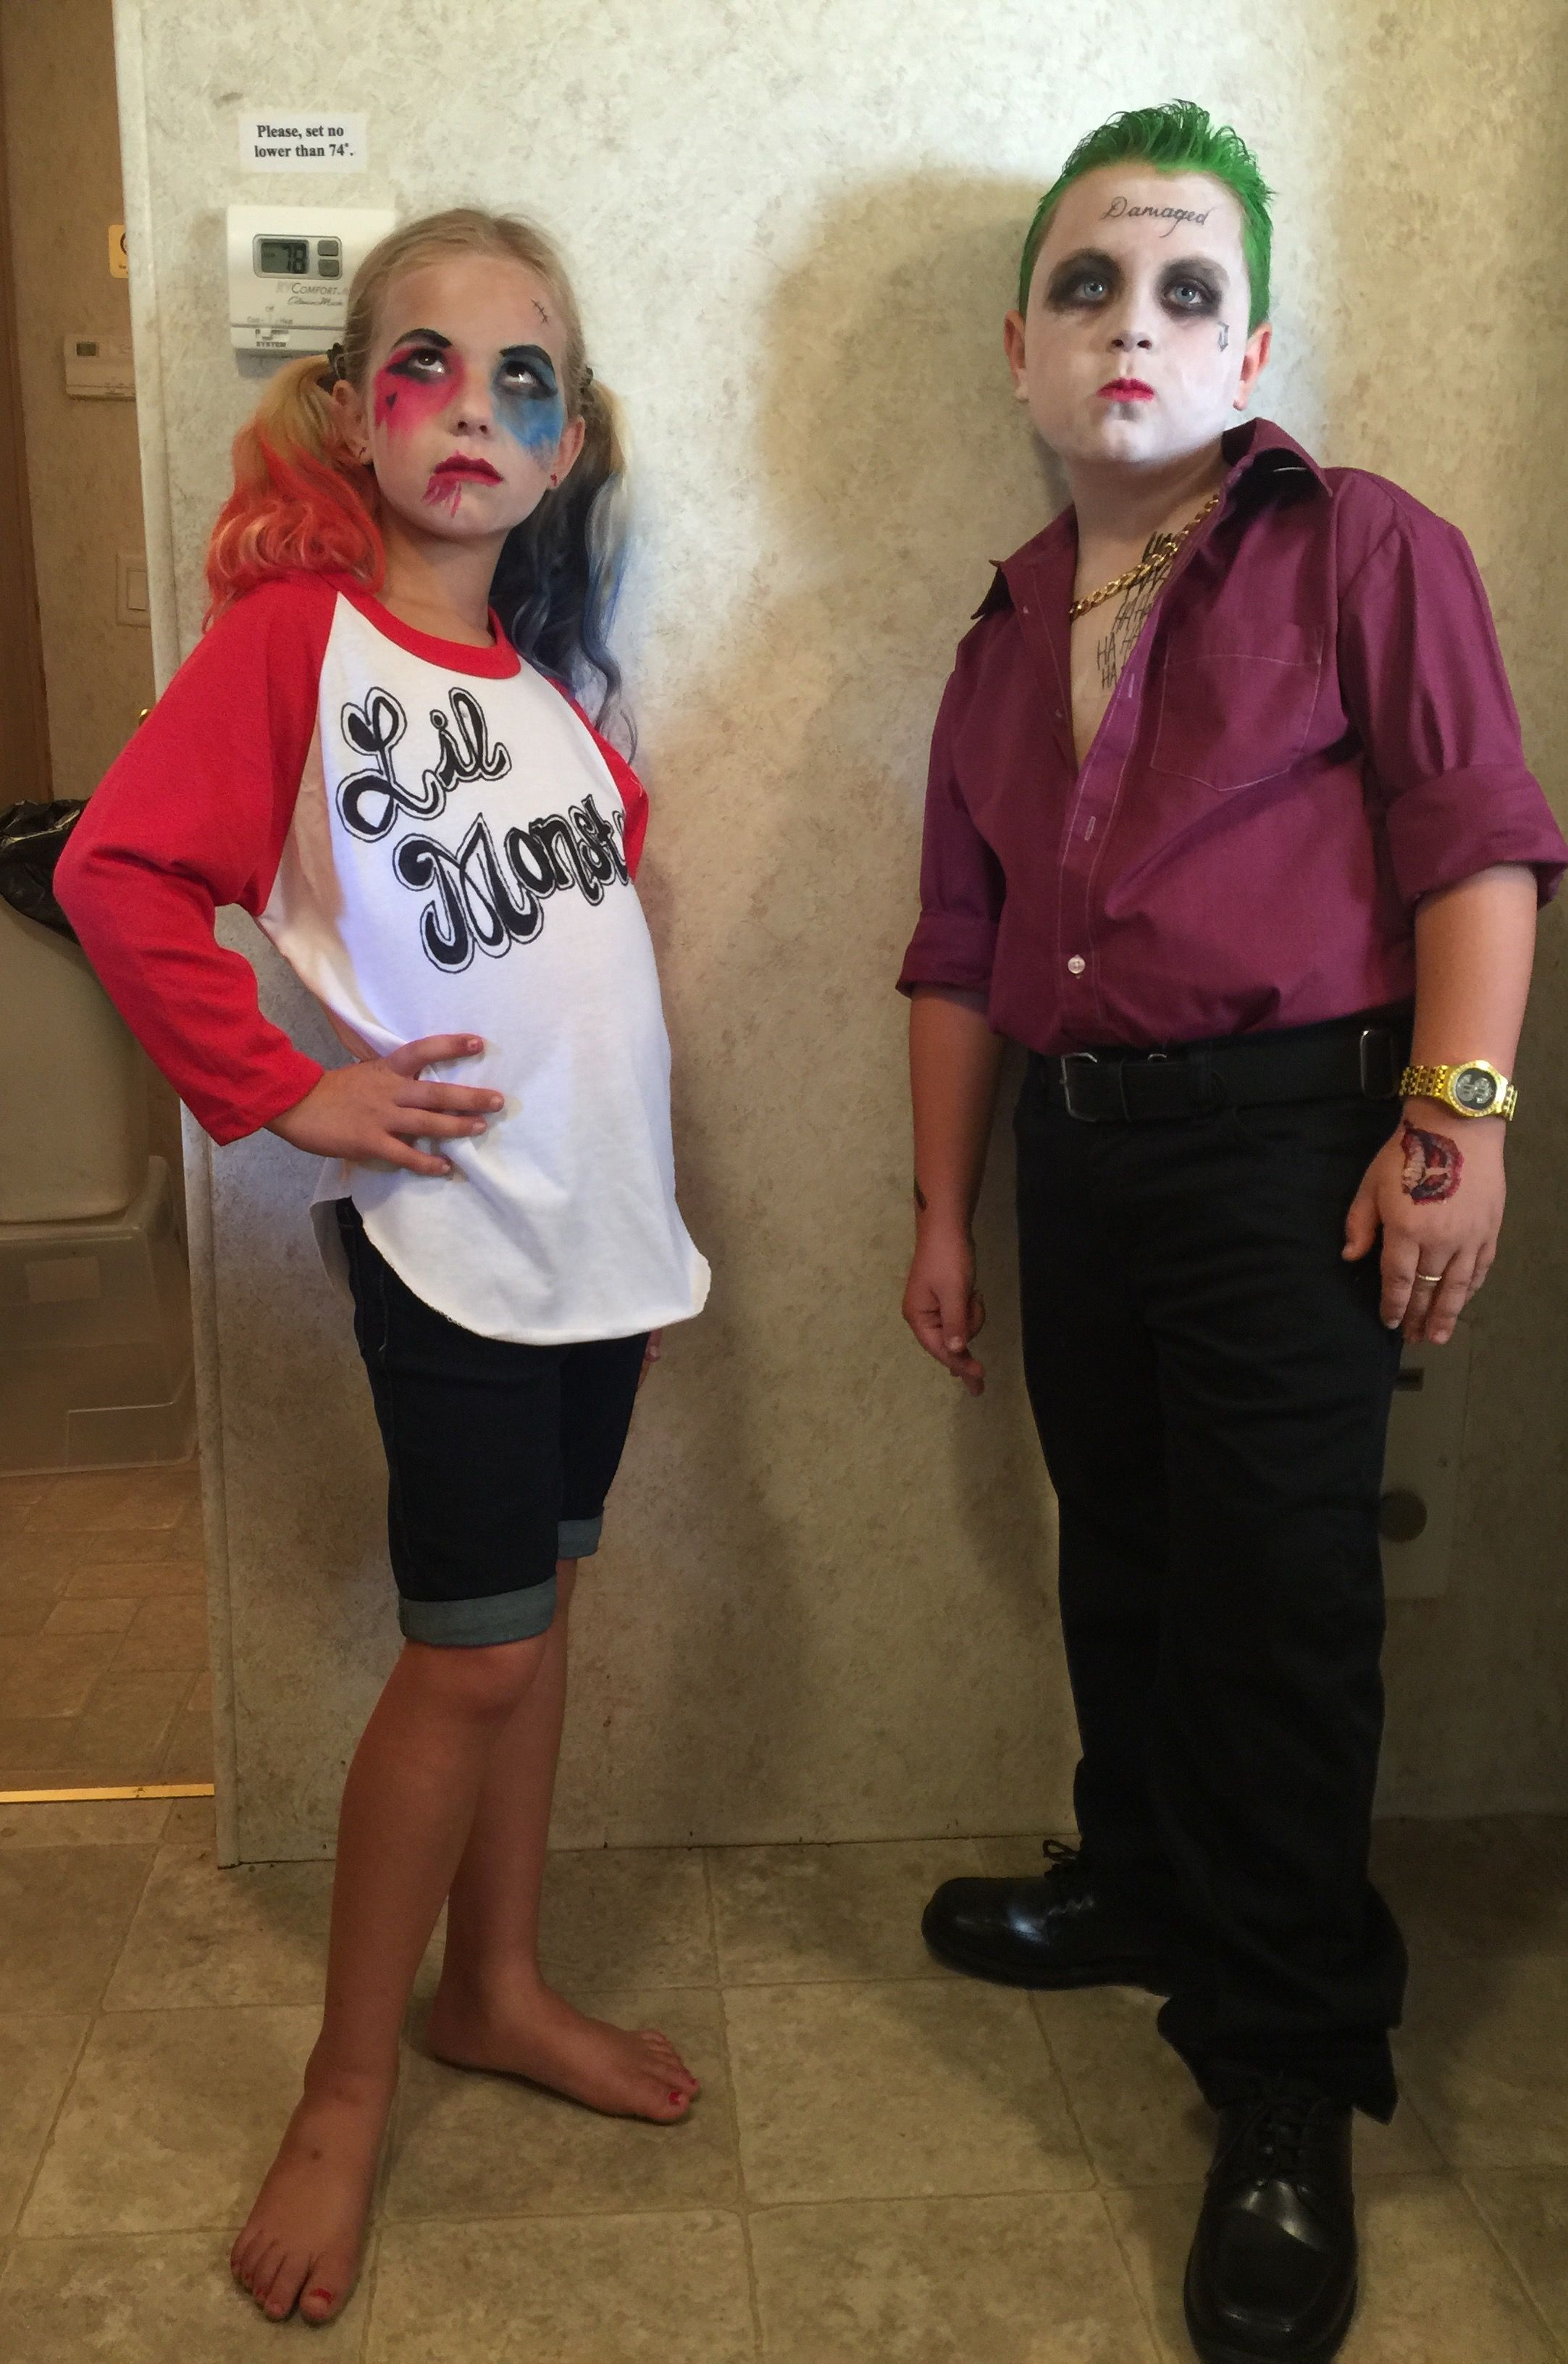 joker and harley quinn kids halloween costume 2016 suicide squad more - Joker Halloween Costume Kids